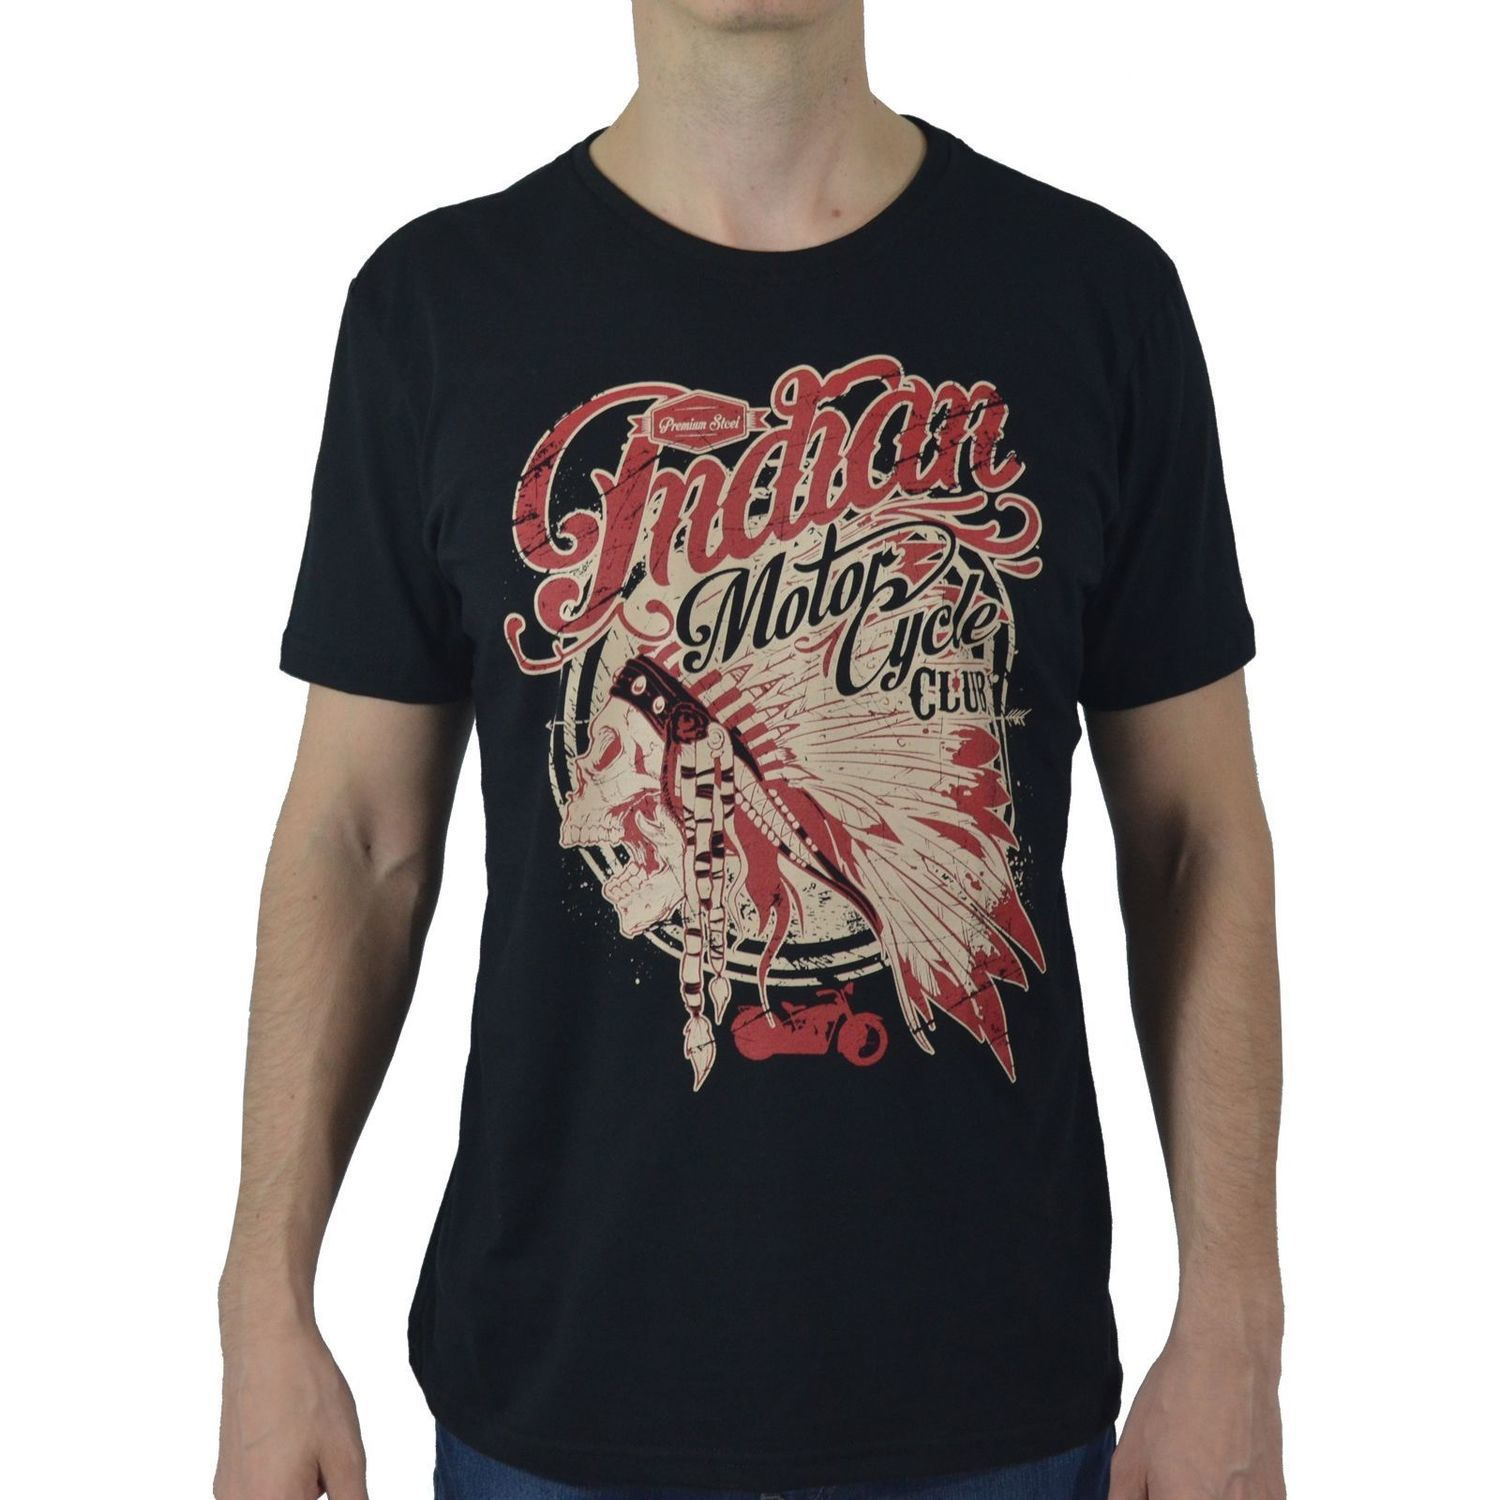 Camiseta Masculina Fallon & Co. Indian Motorcycle Club Preta